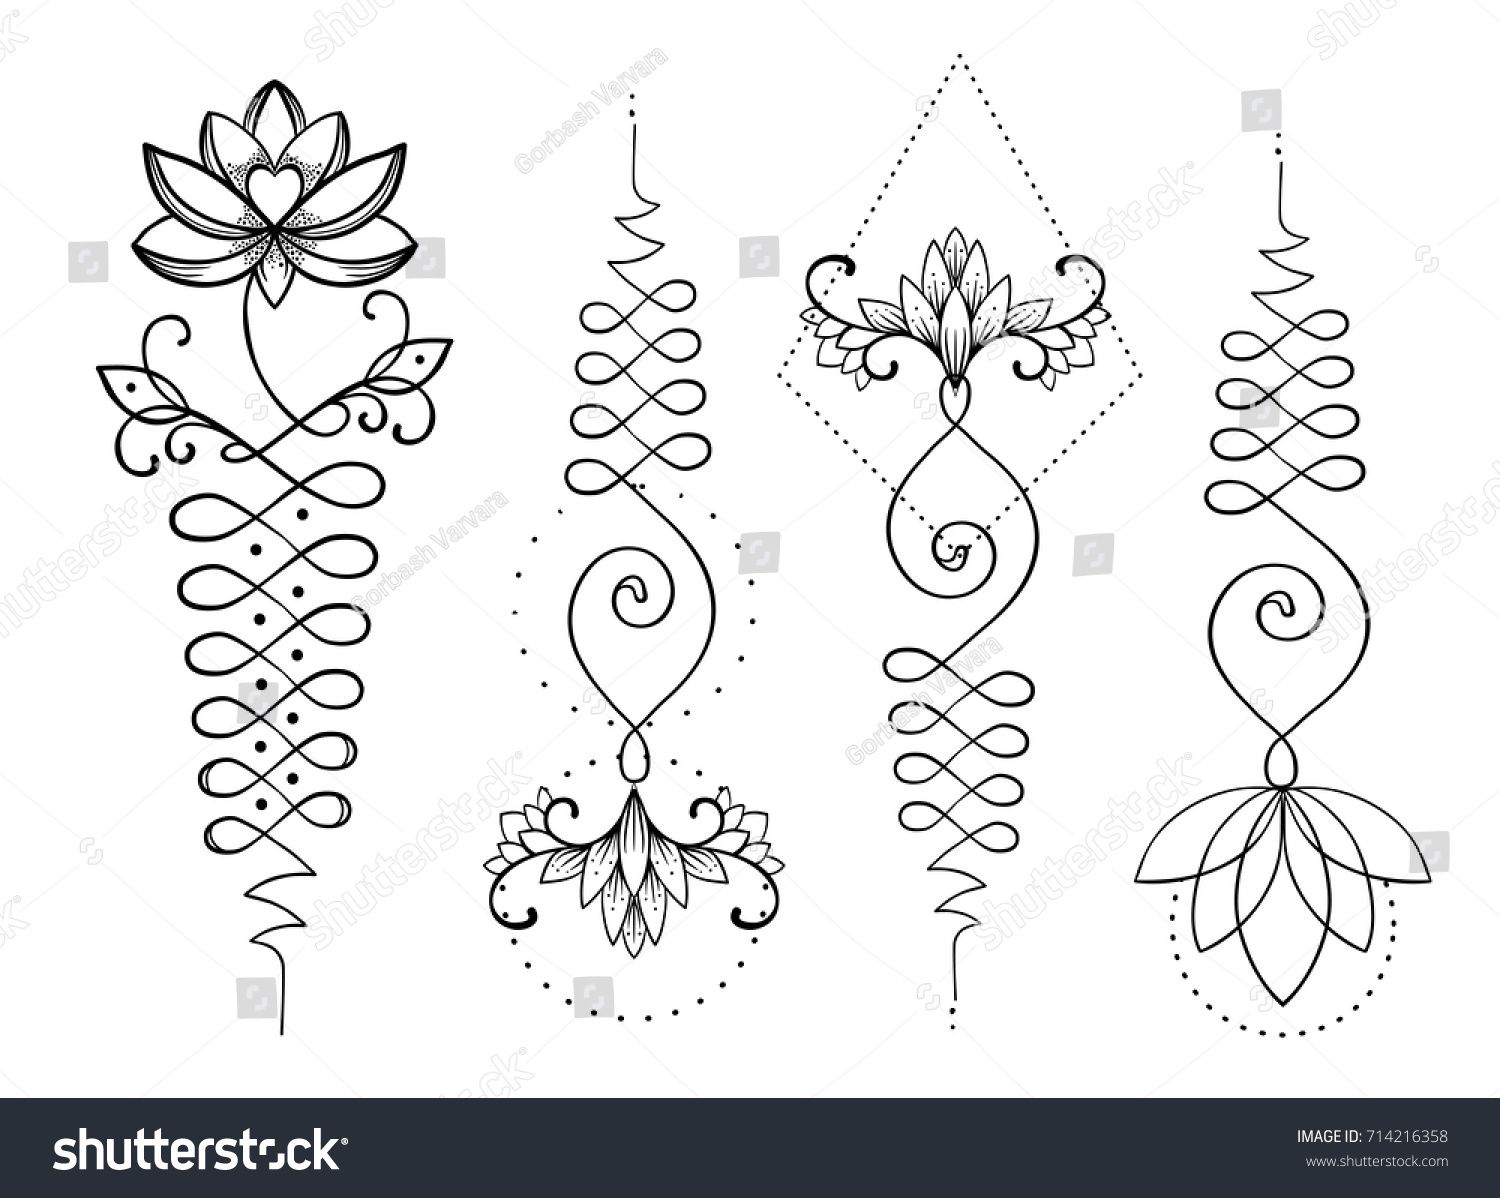 1500x1198 Stock Vector Lotus And Sacred Geometry Unamole Hindu Symbol Of